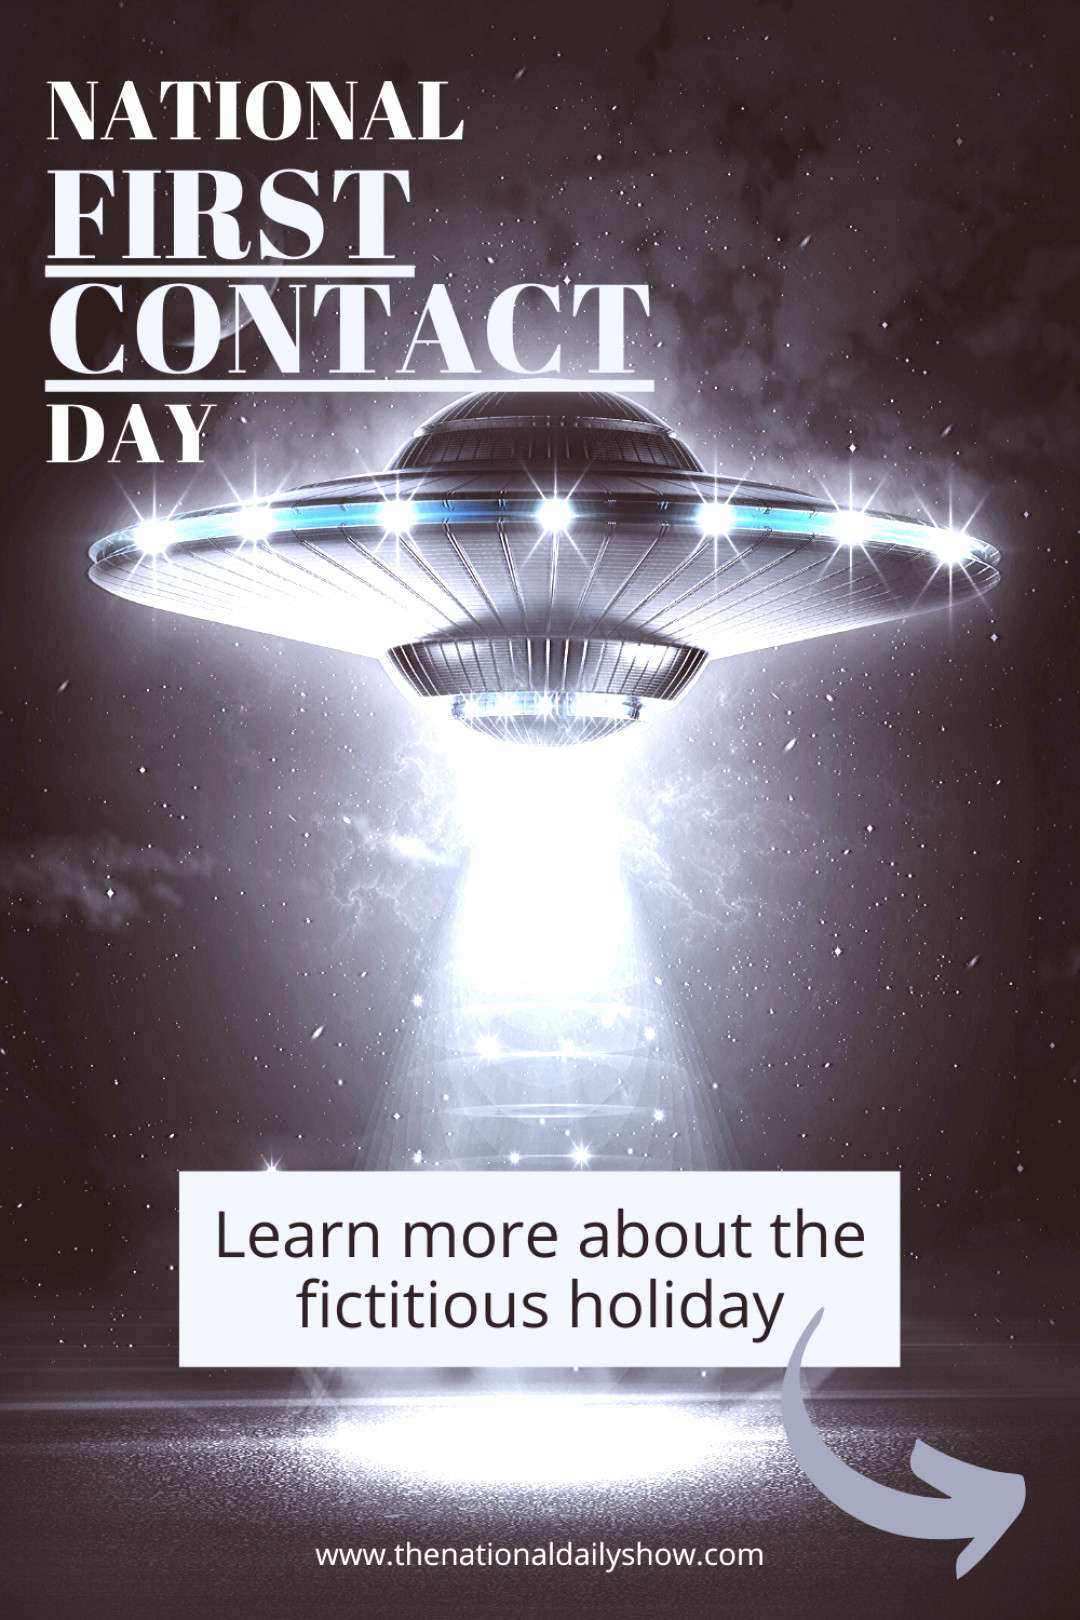 National First Contact Day with The National Daily Show National first contact day is a fictitious